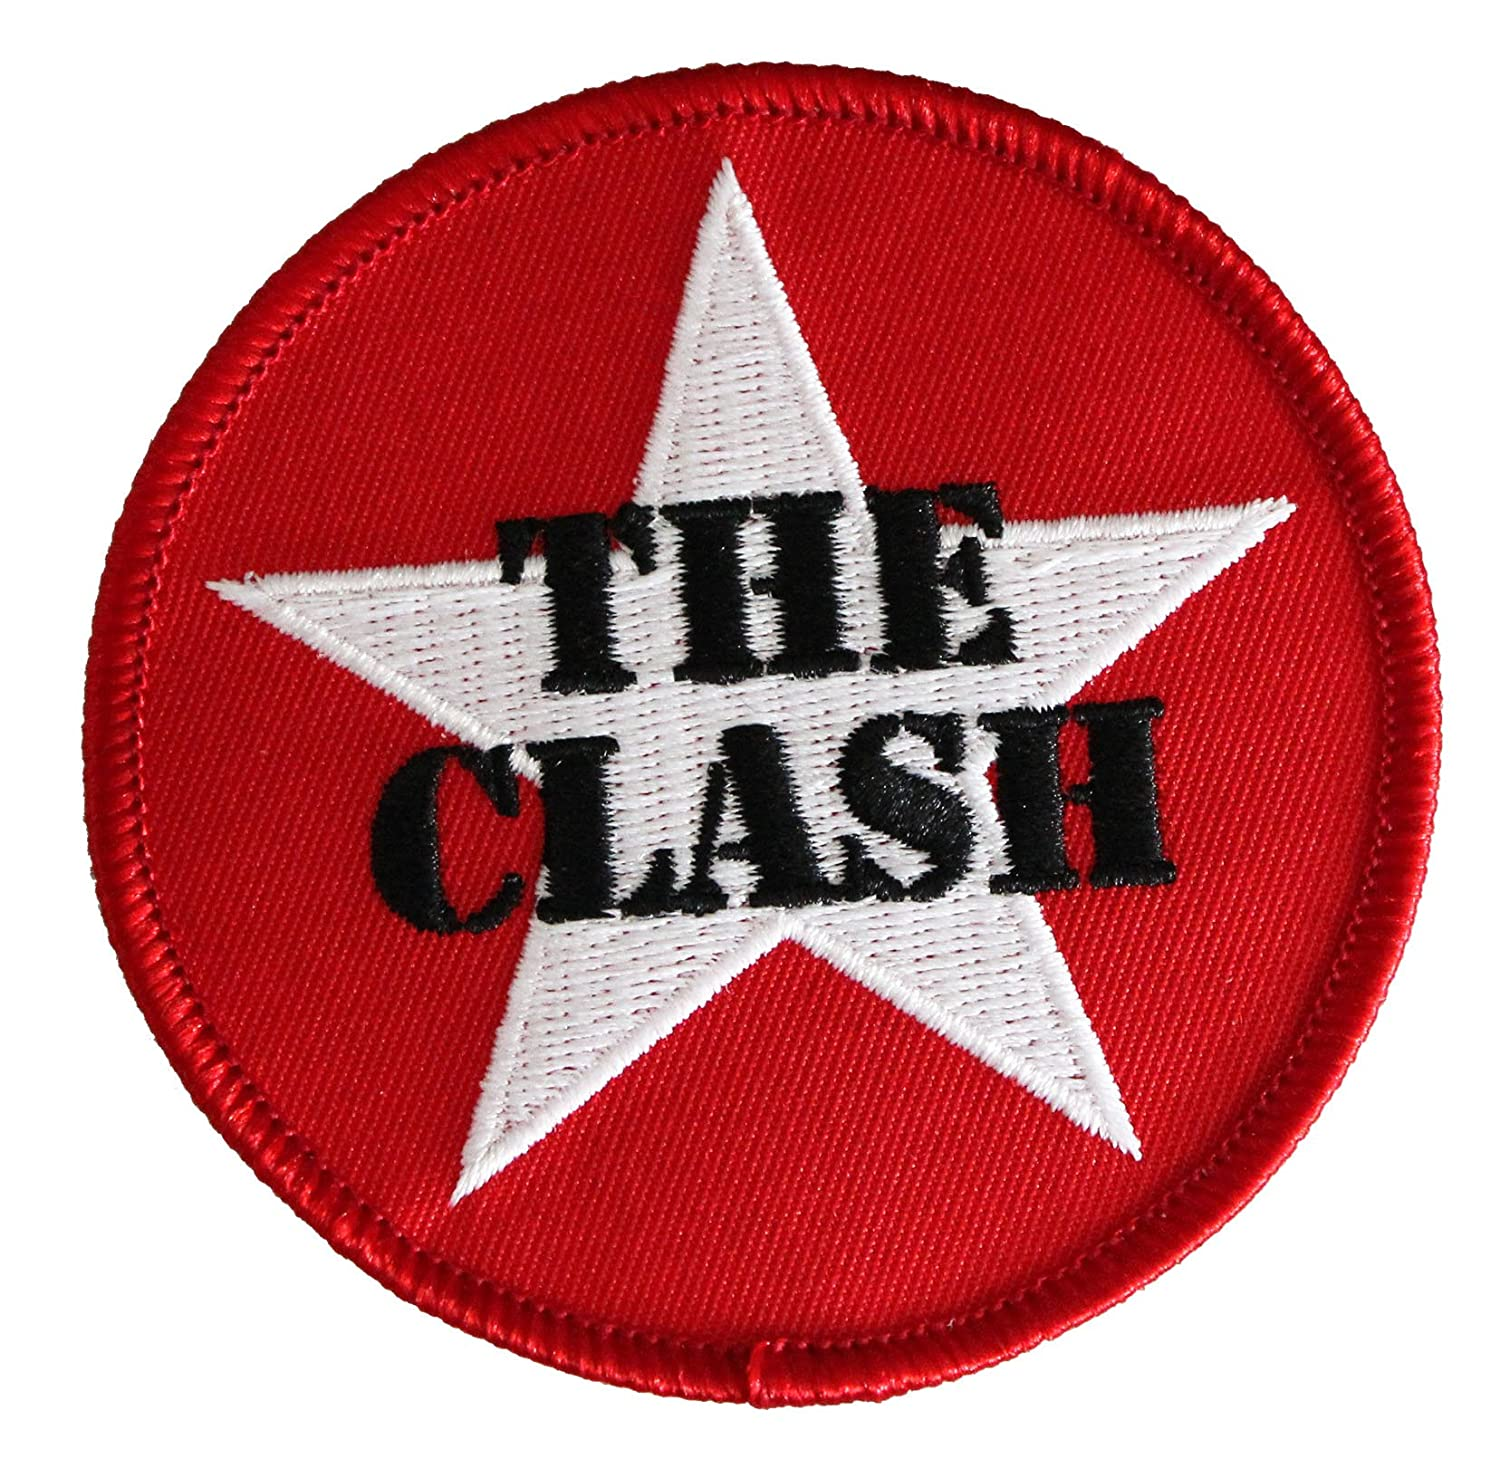 THE CLASH Star Logo, Officially Licensed Original Artwork, High Quality Iron-On / Sew-On, 3' x 3' Embroidered PATCH PARCHE 3 x 3 Embroidered PATCH PARCHE Officially Licensed & Trademarked Products P-4256